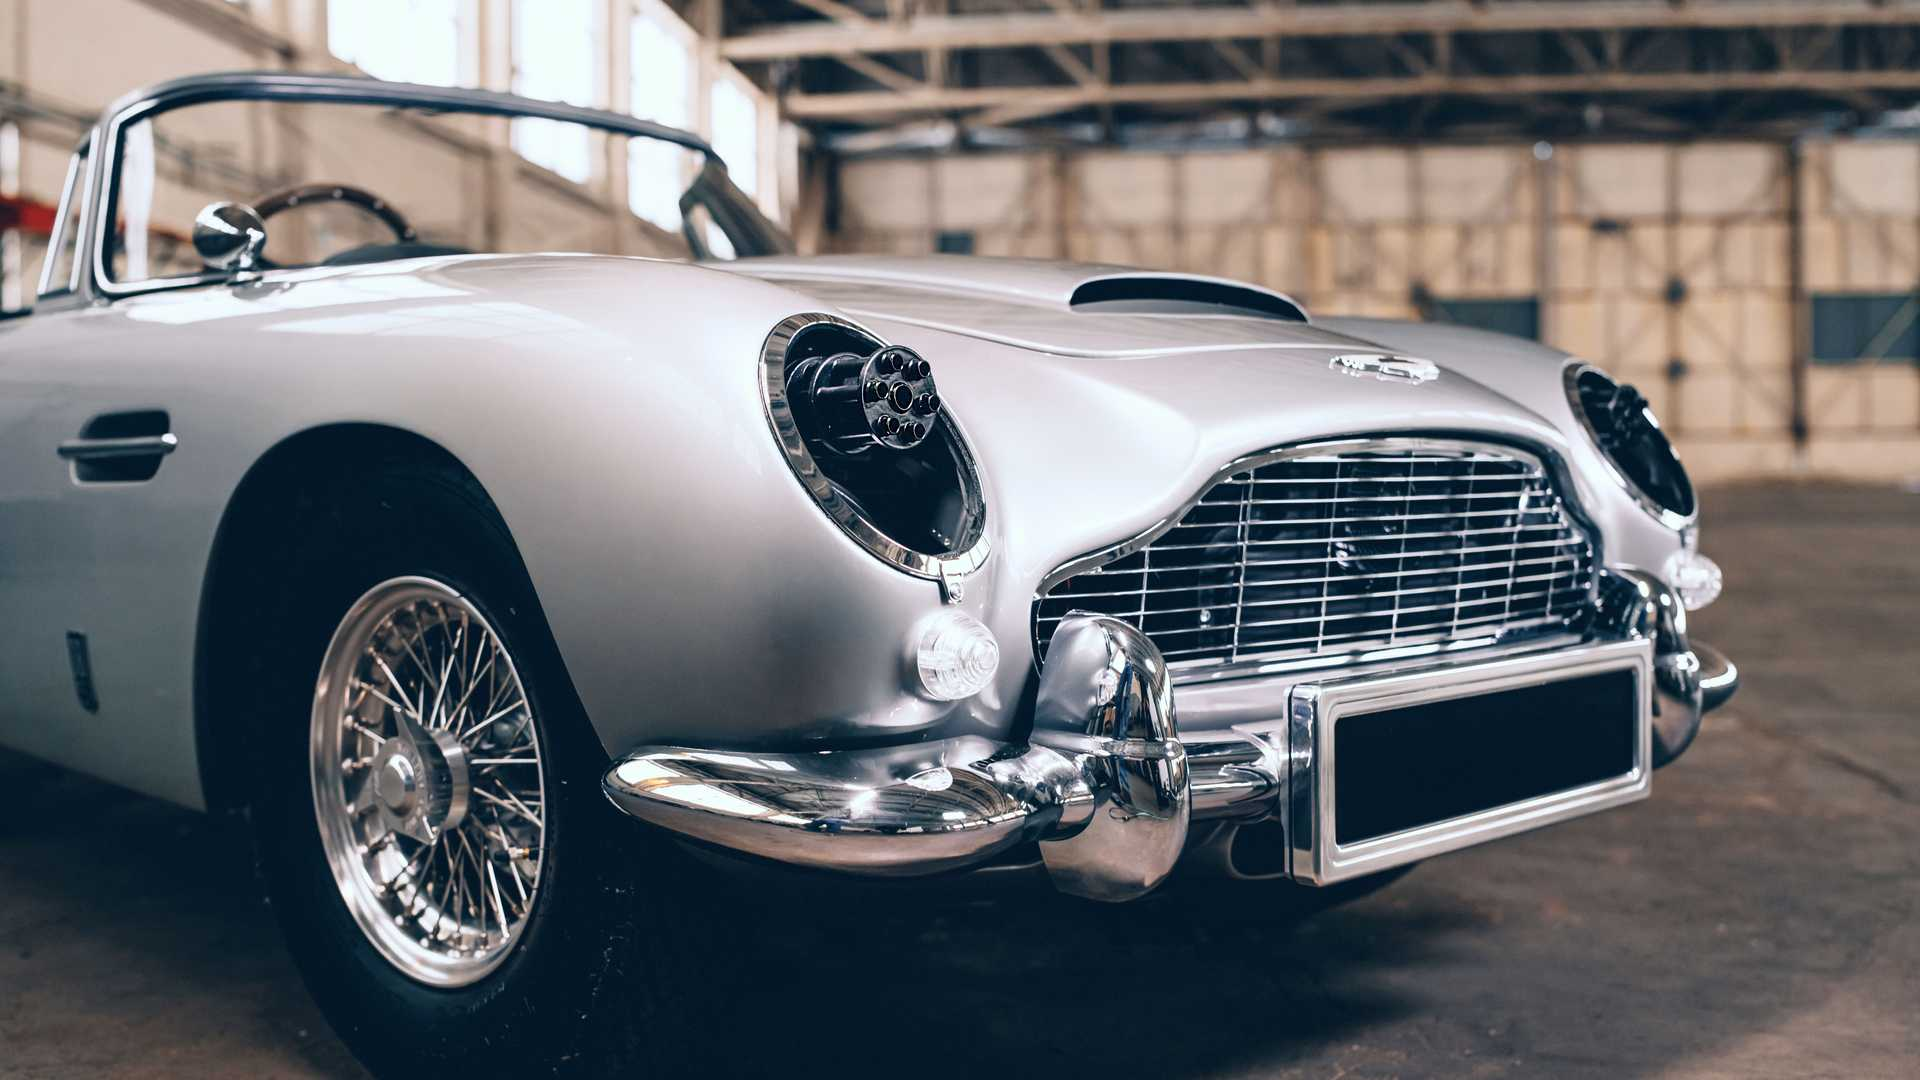 https://cdn.motor1.com/images/mgl/rxGM1/s6/aston-martin-db5-junior-no-time-to-die-edition-front.jpg